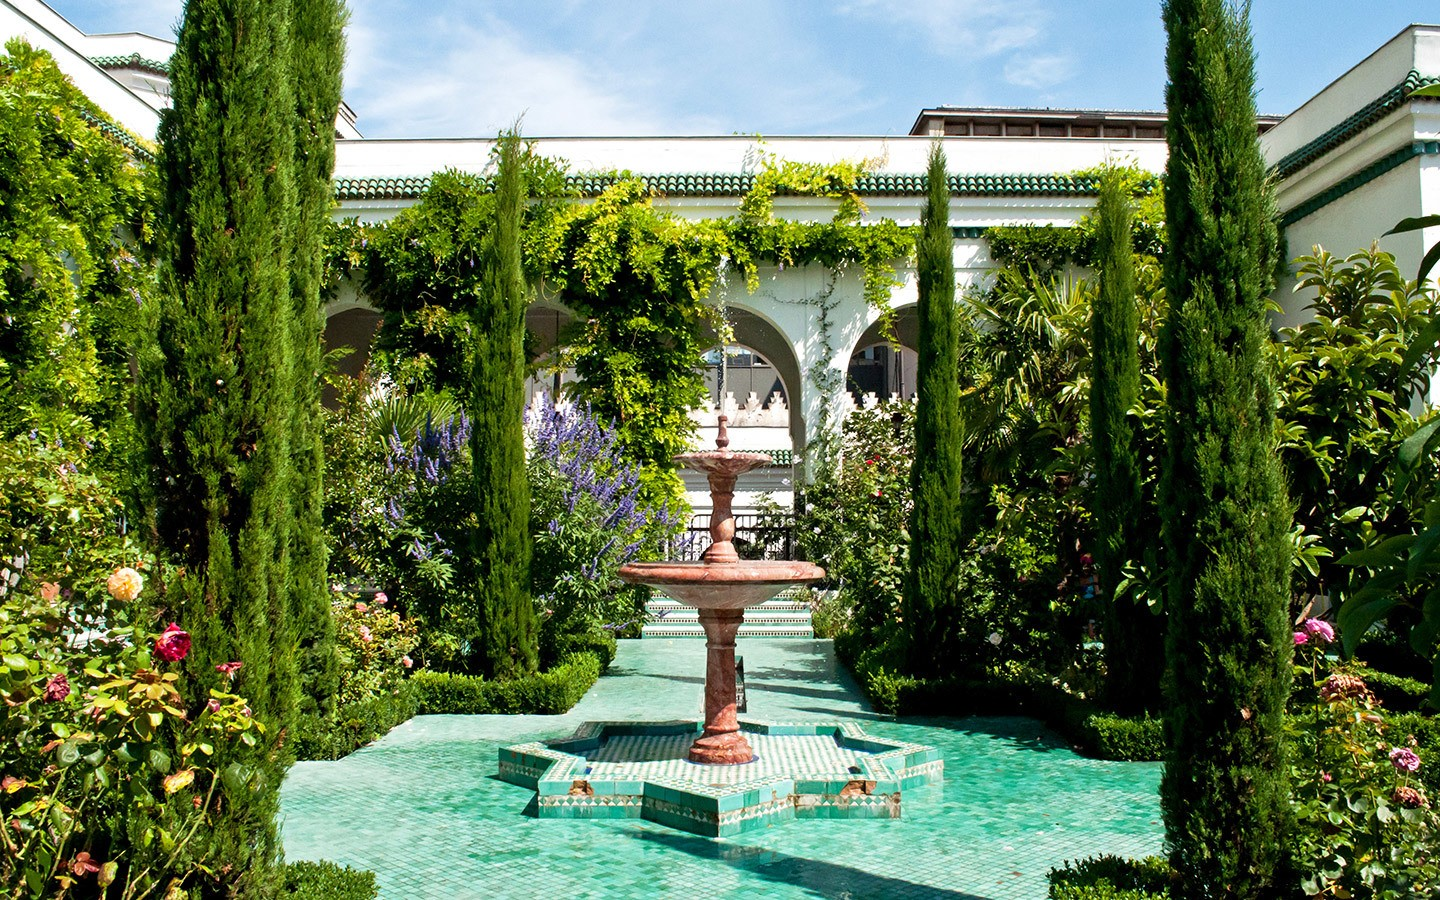 Gardens at the Grand Mosquée de Paris